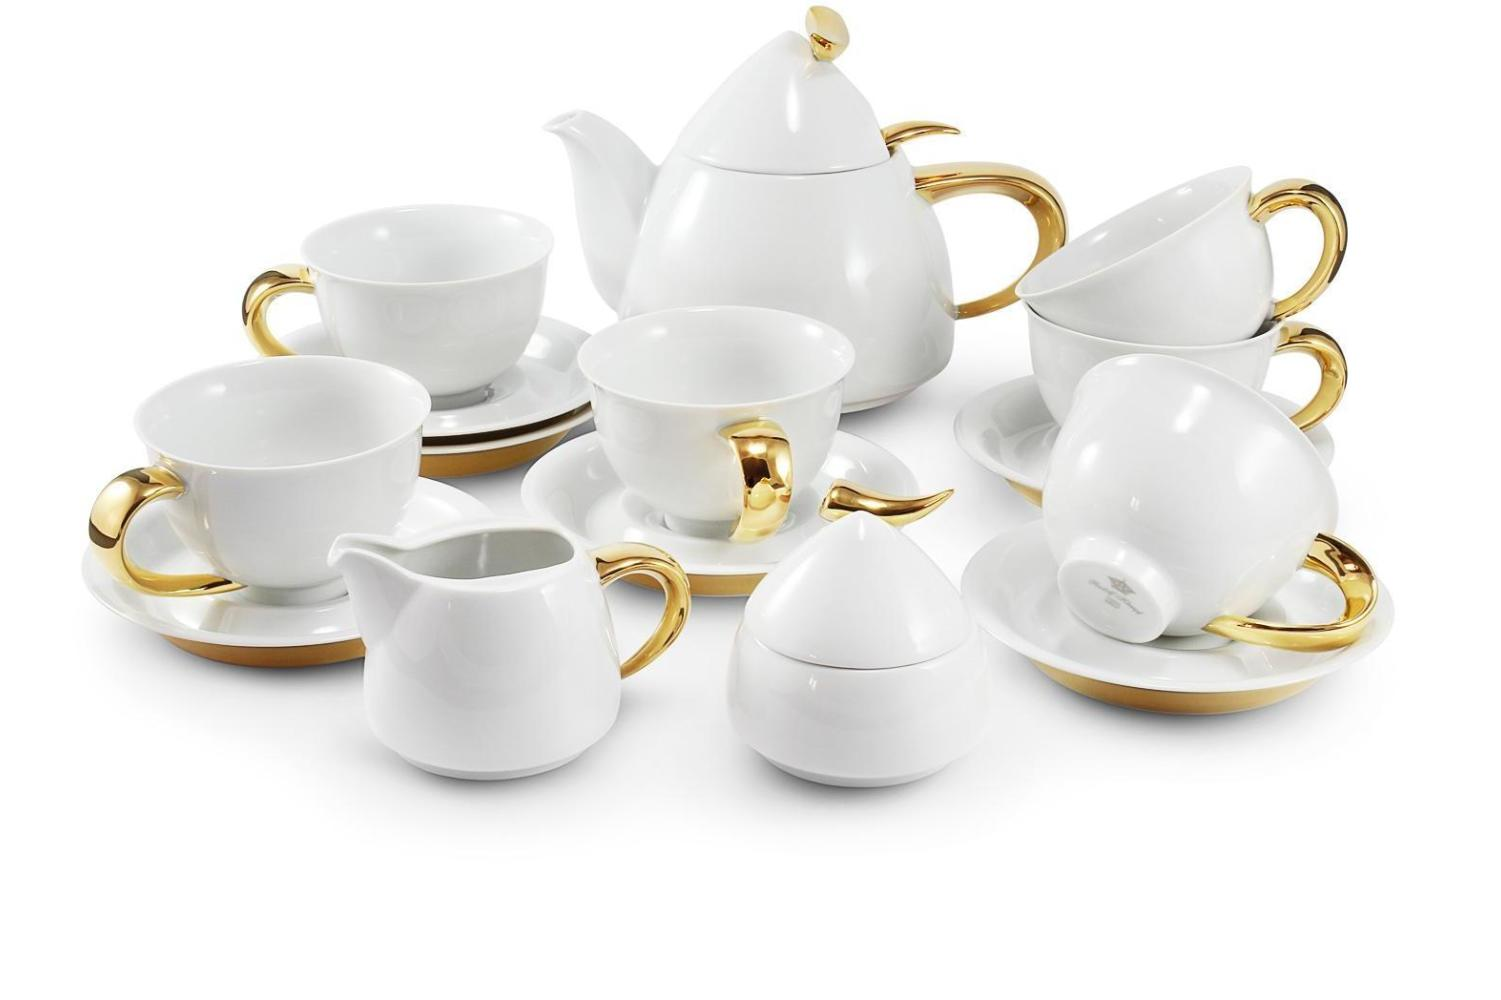 Tea service 15-piece Golden Celt